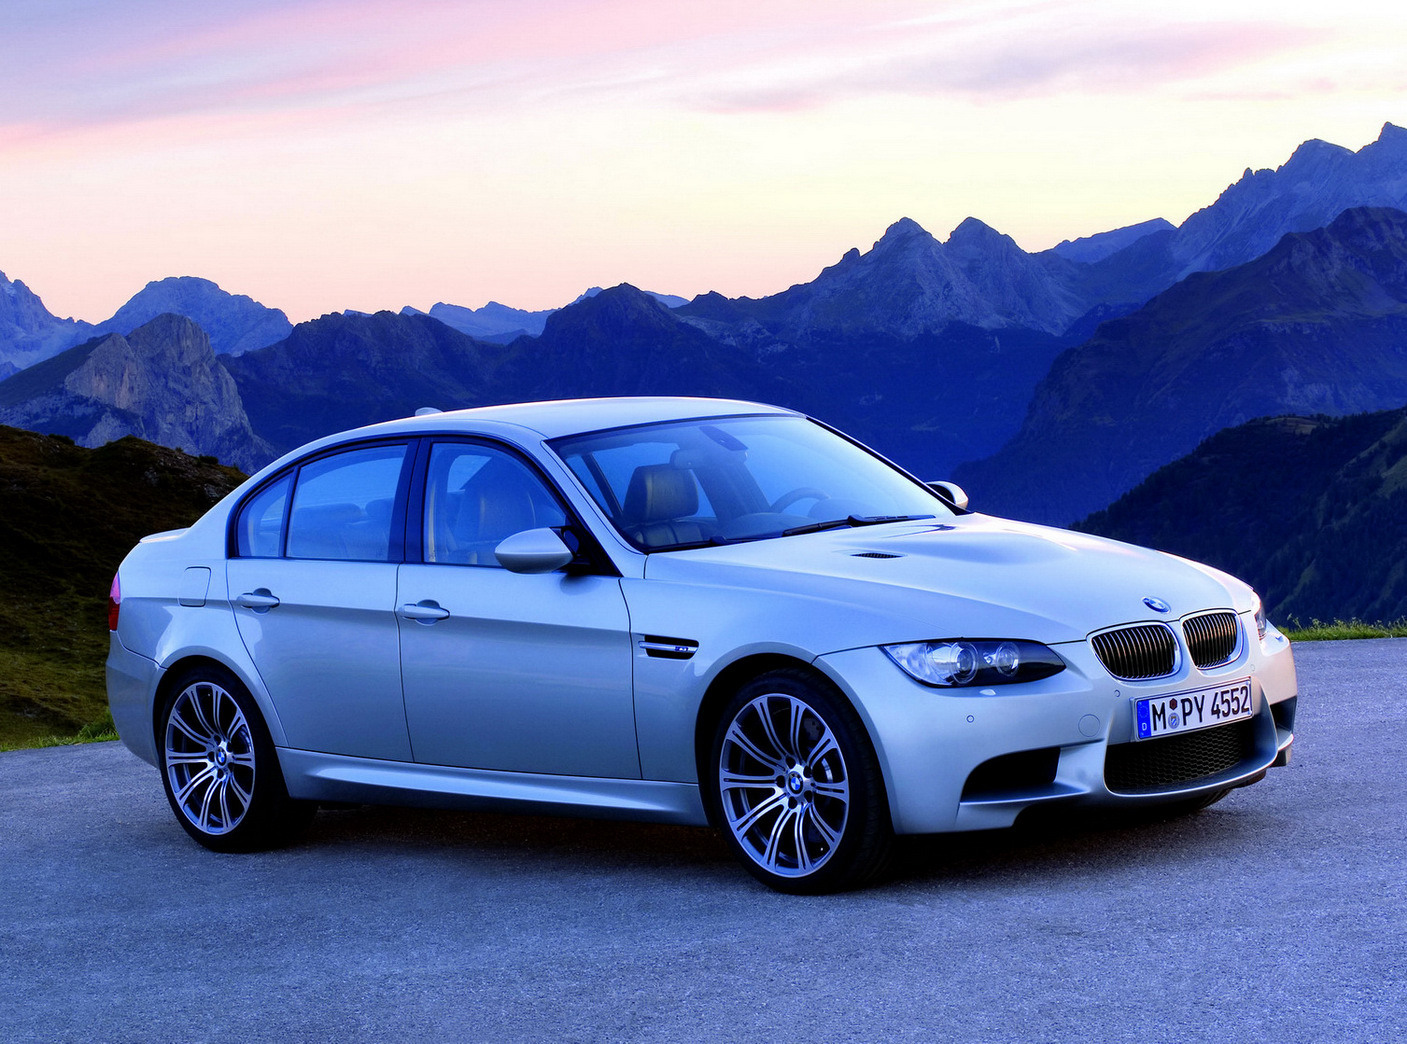 BMW M3 Car Specifications Wallpaper Backgrounds